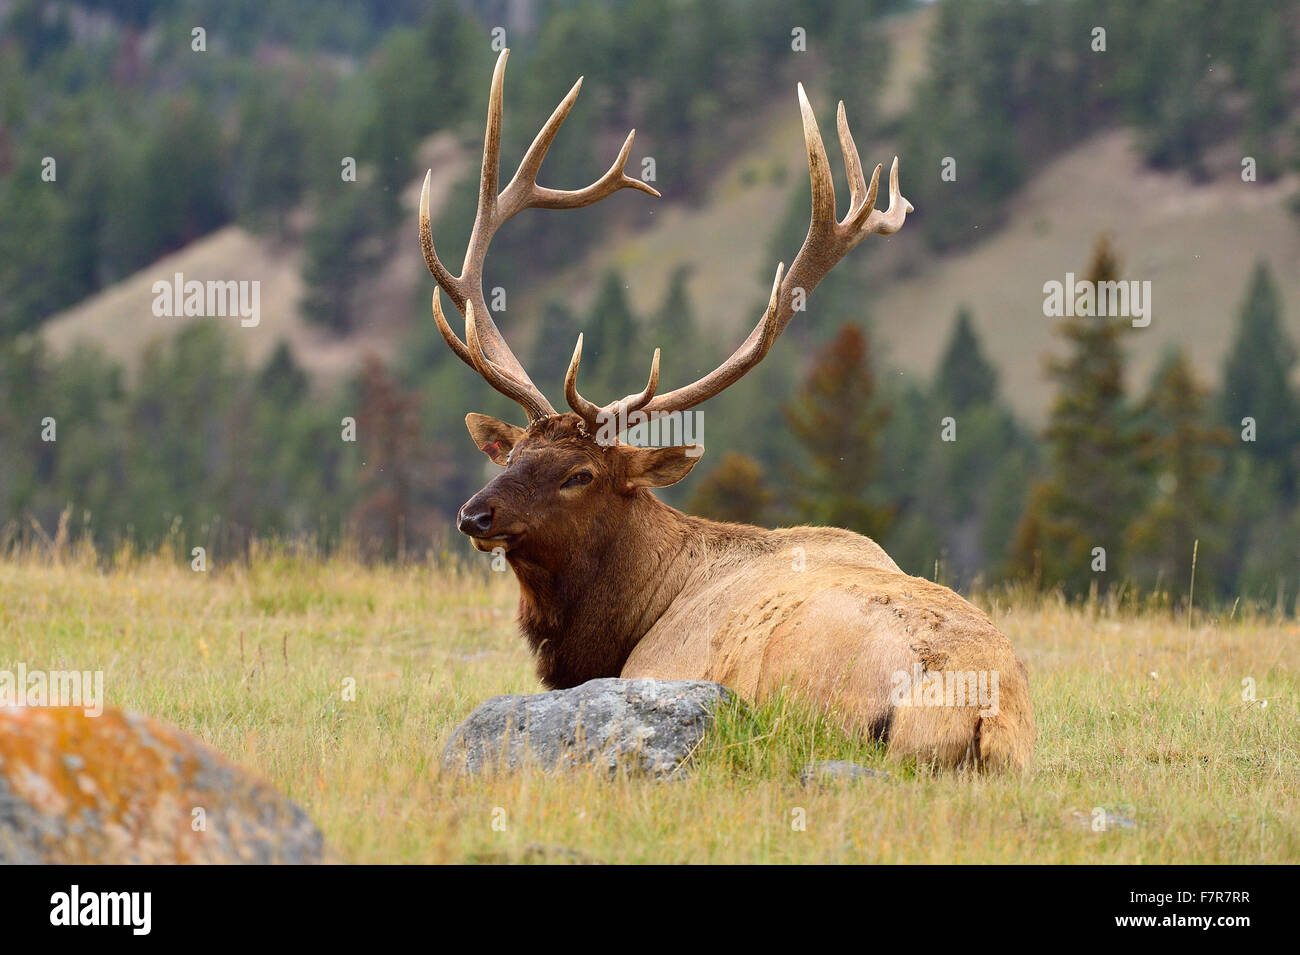 A large bull elk  Cervus elaphus, laying down in a grassy meadow - Stock Image